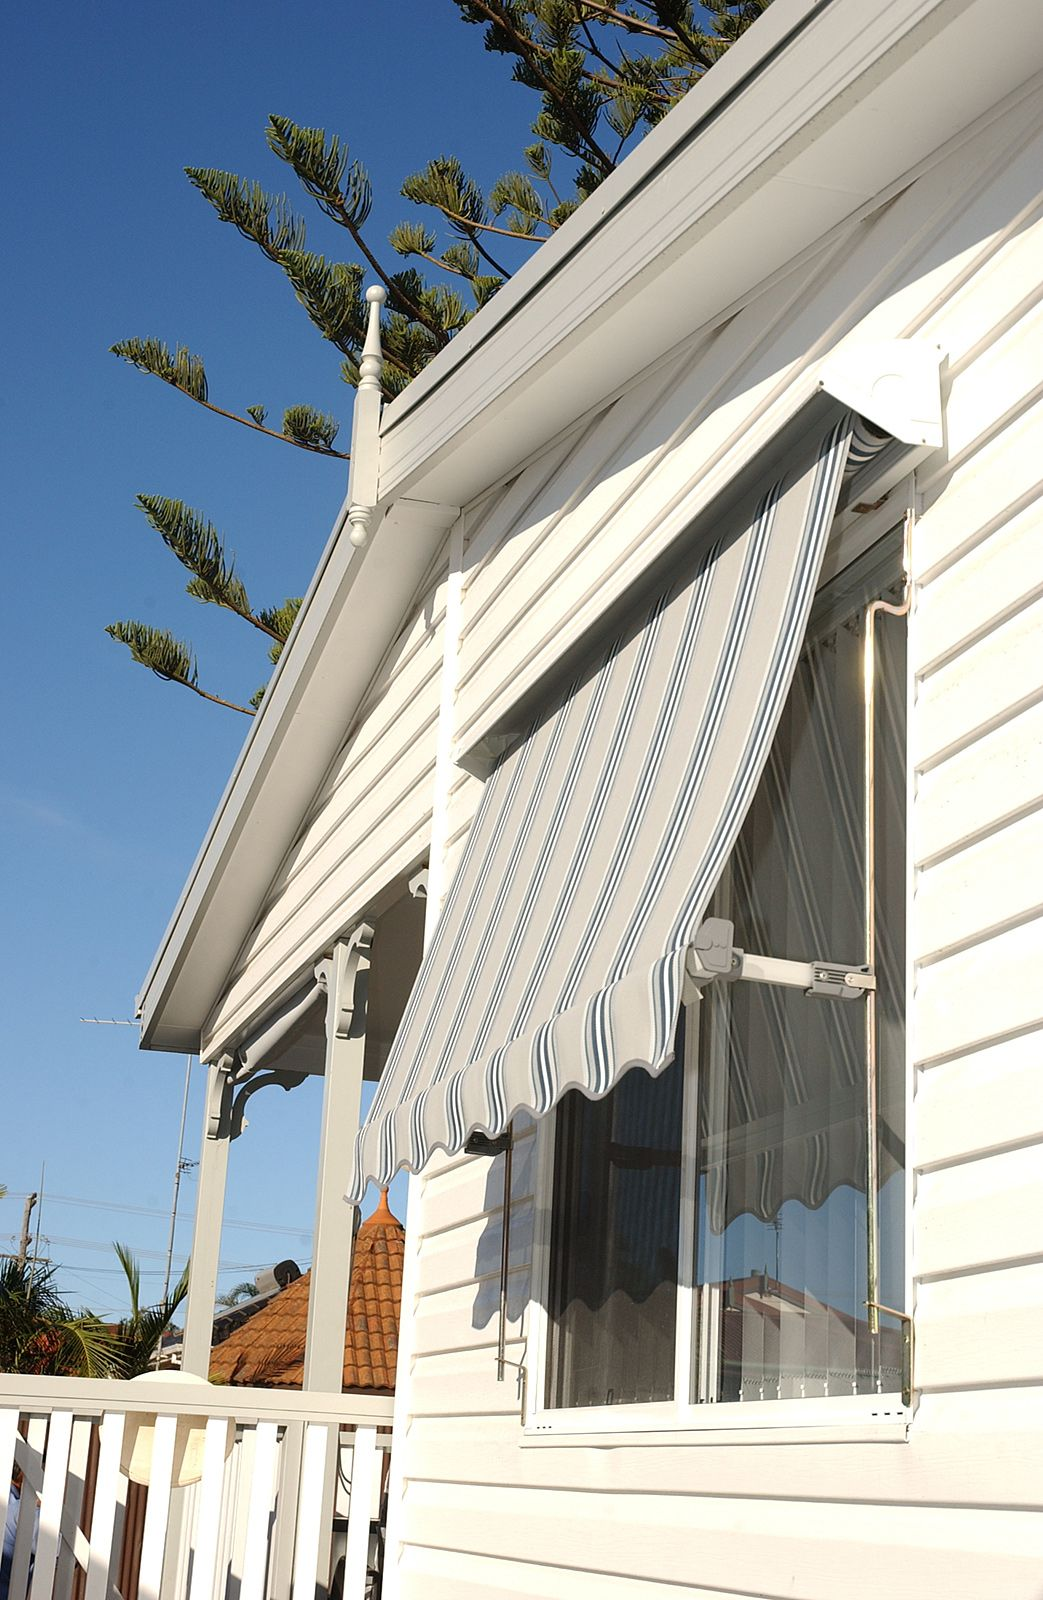 DIY Awnings Retractable Over Doors Ideas, Patio Awnings Front Door, Awnings  For Windows And